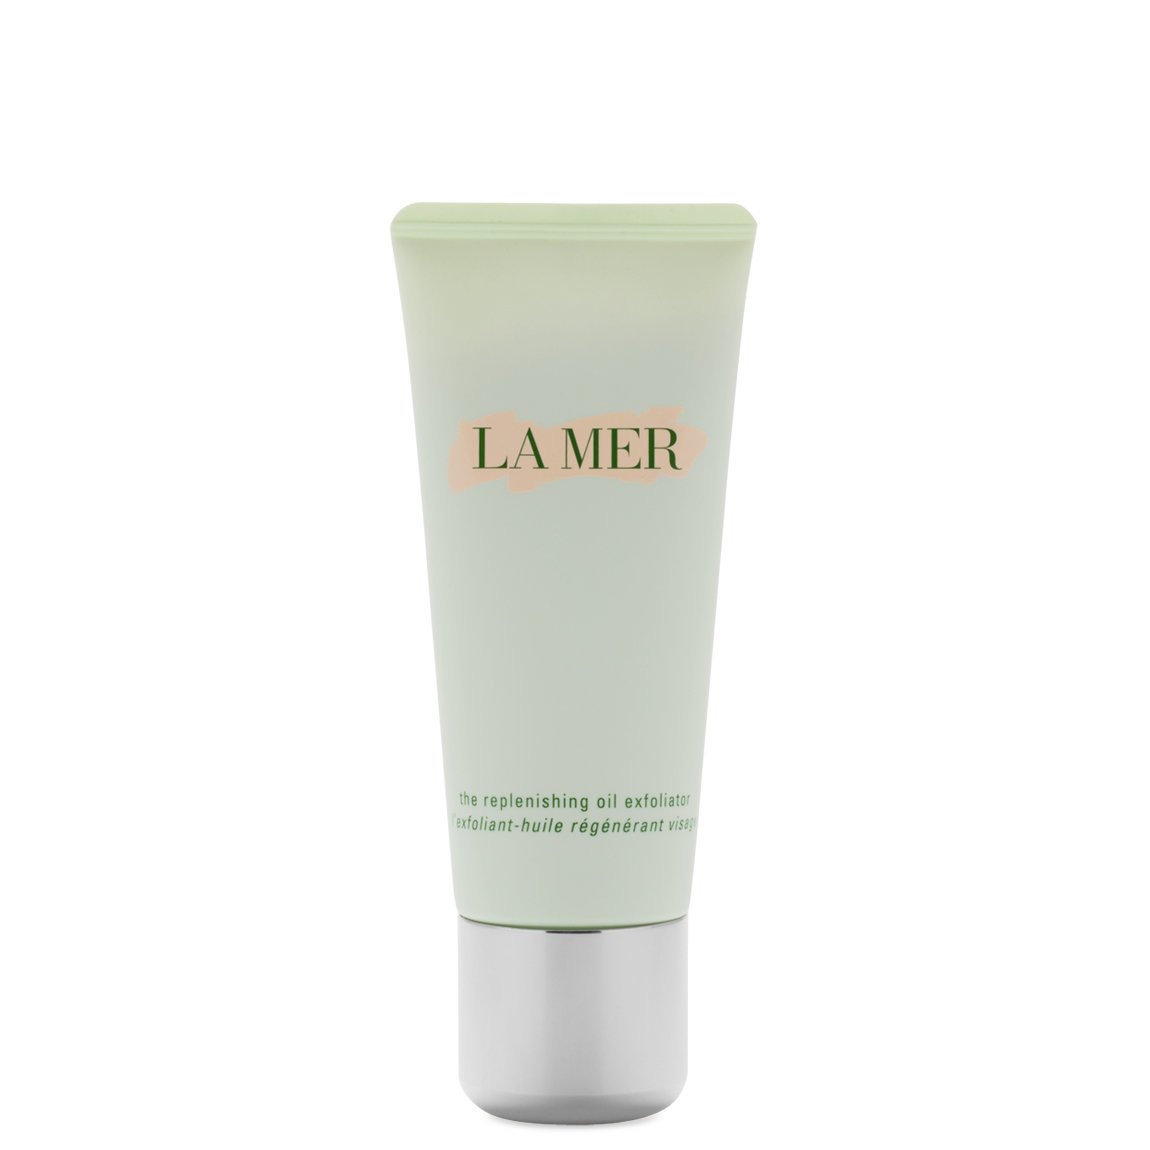 La Mer The Replenishing Oil Exfoliator alternative view 1 - product swatch.